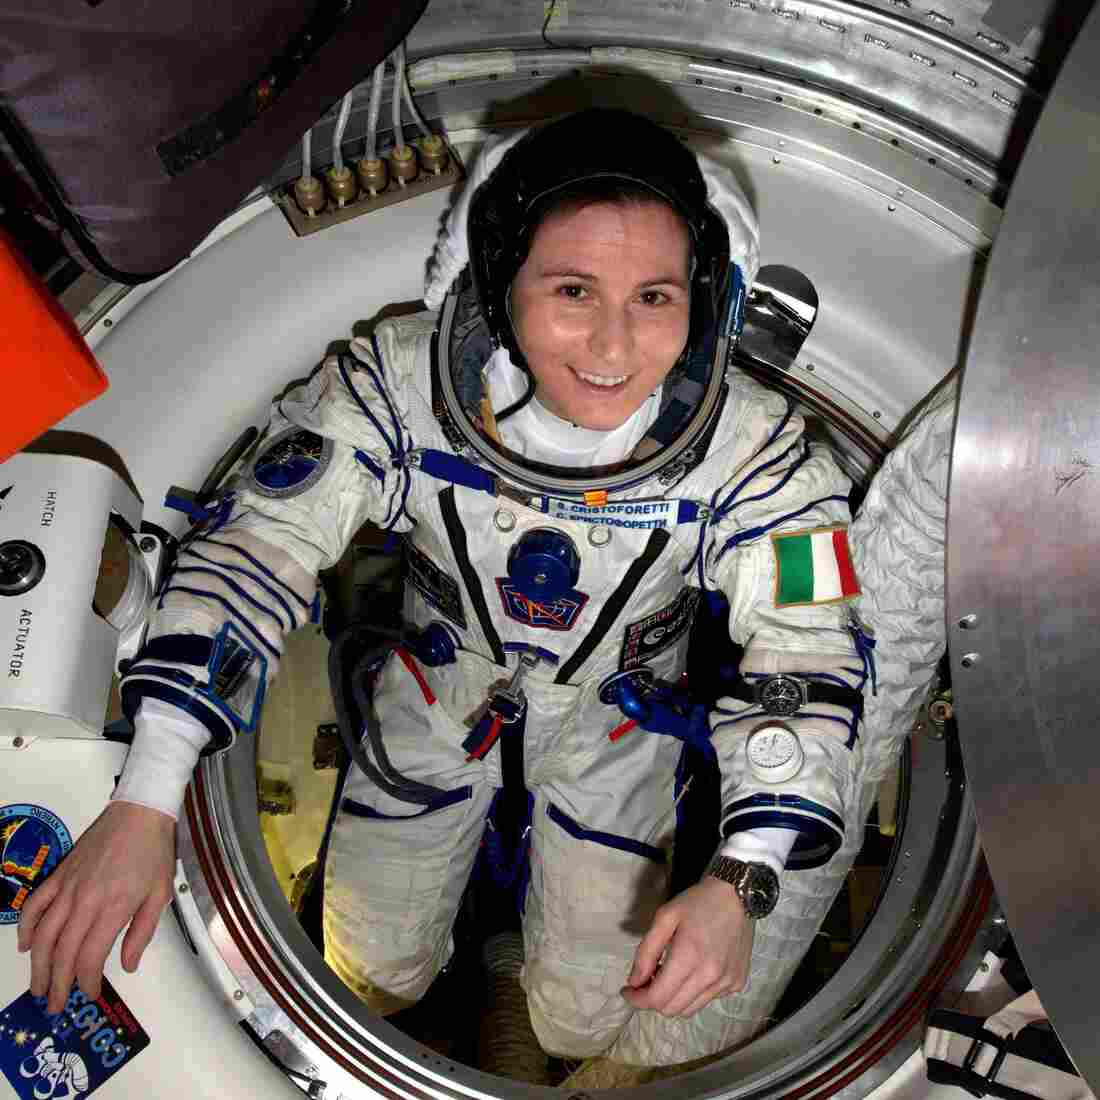 Trio Of Astronauts Return To Earth After Record-Breaking ISS Mission